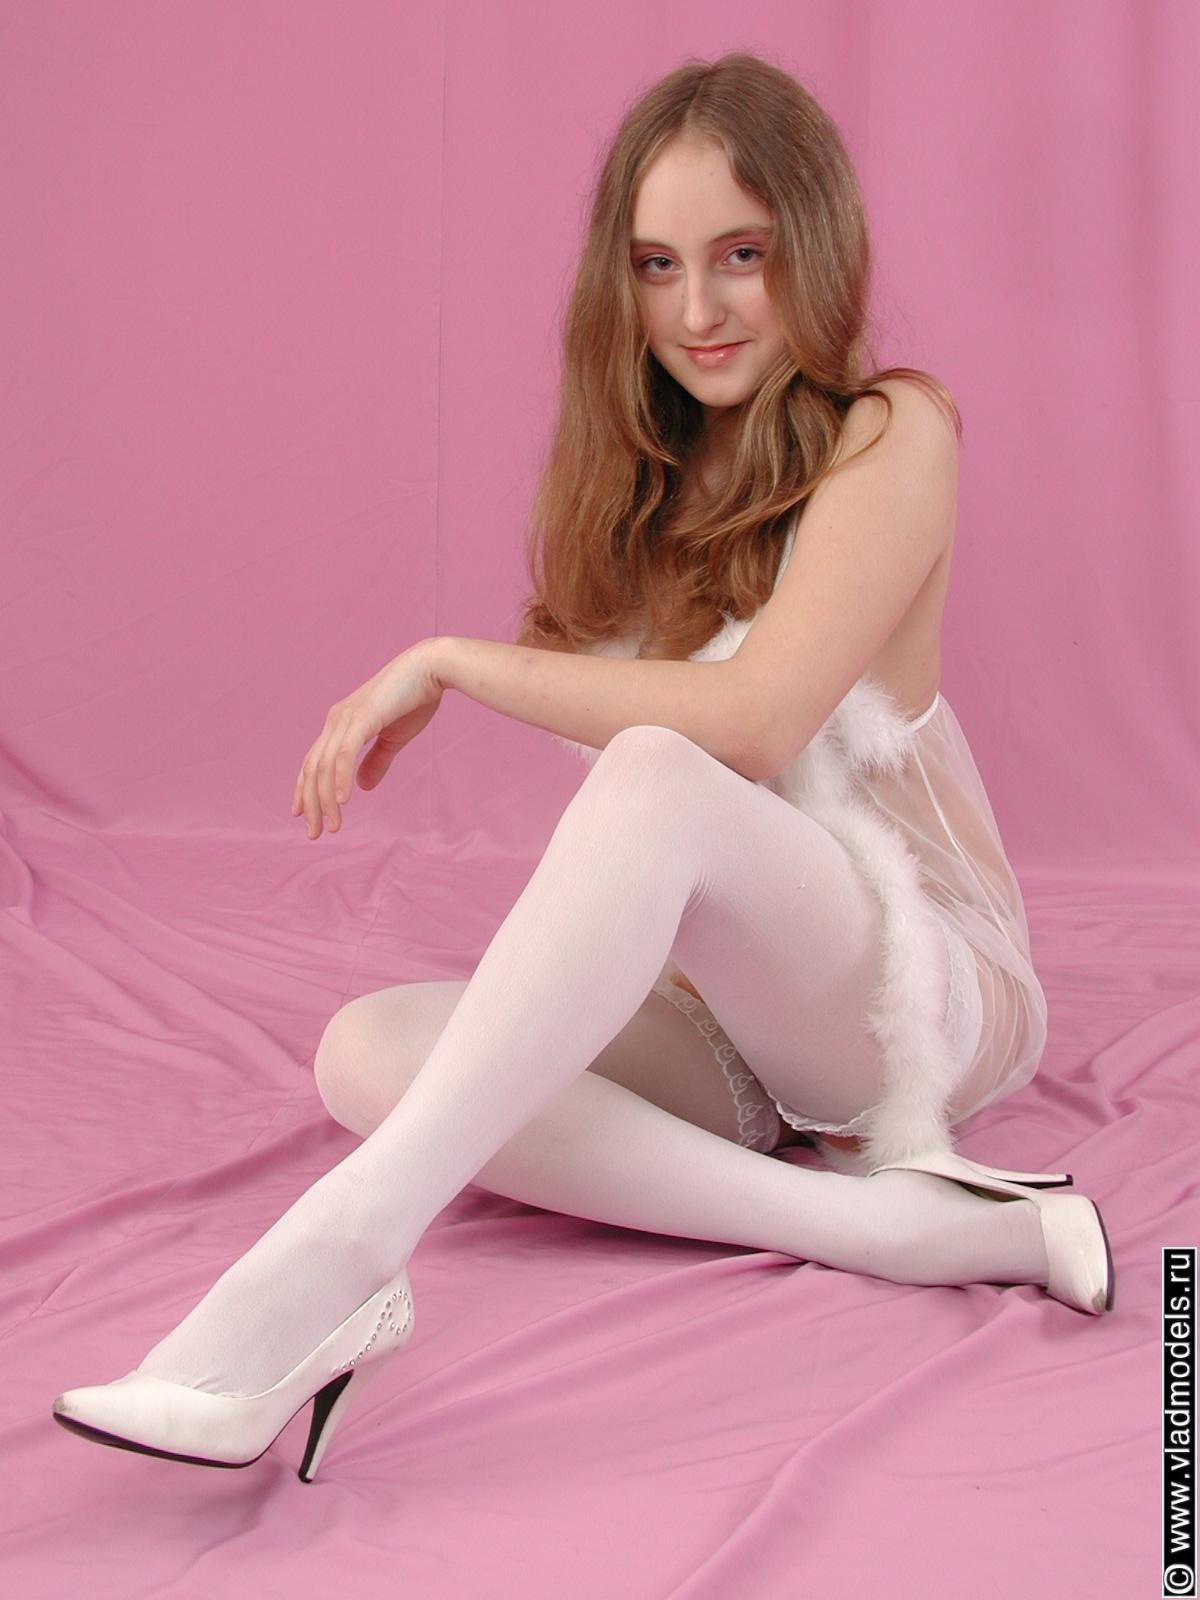 reup (vladmodel in white stocking) y092_Vladislava 024